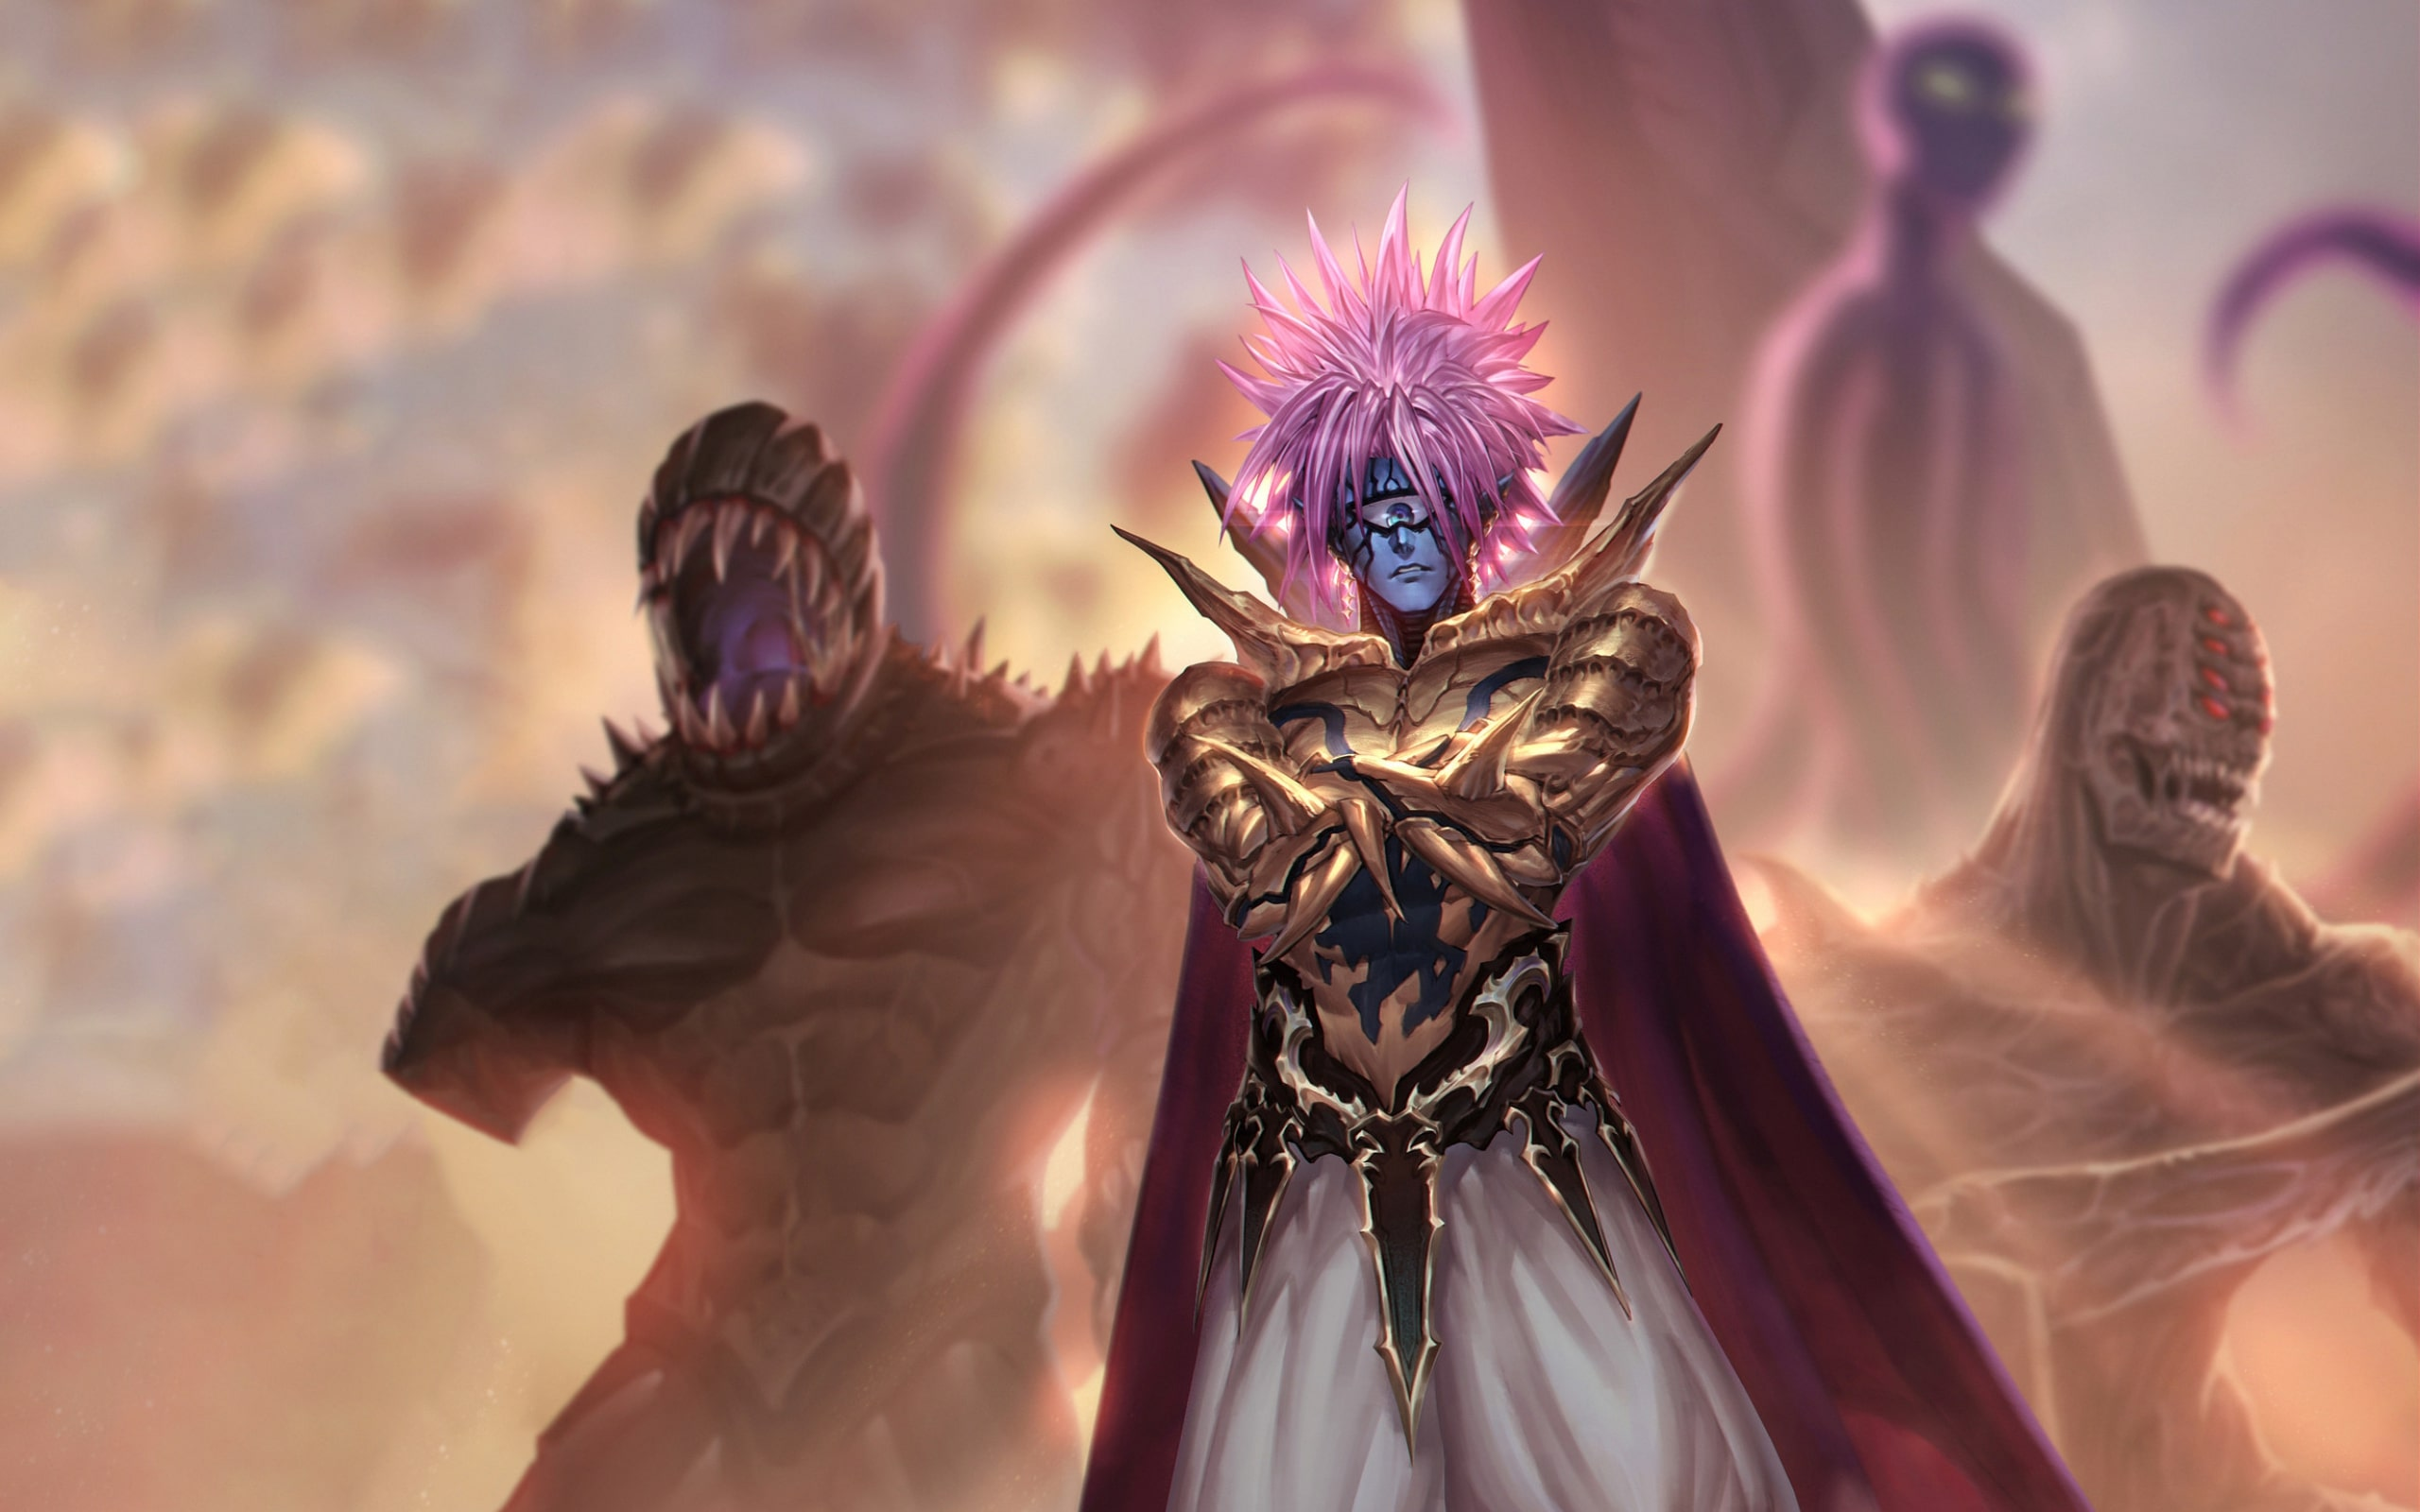 Wallpaper Of Boros One Punch Man Anime Background Hd Image